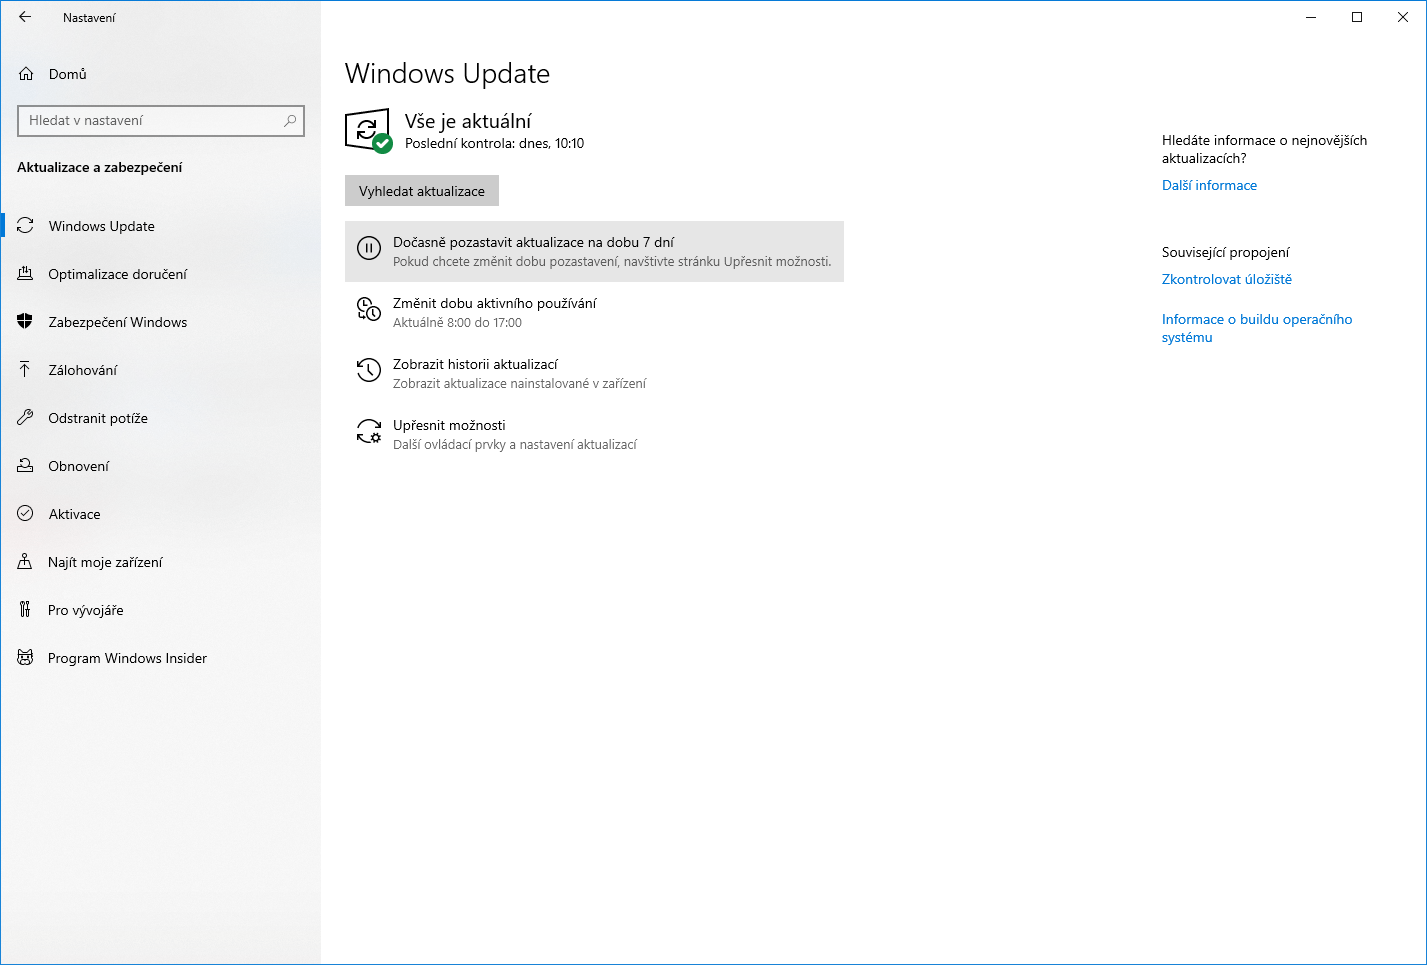 windows 10 pozastaveni aktualizace upgrady 5